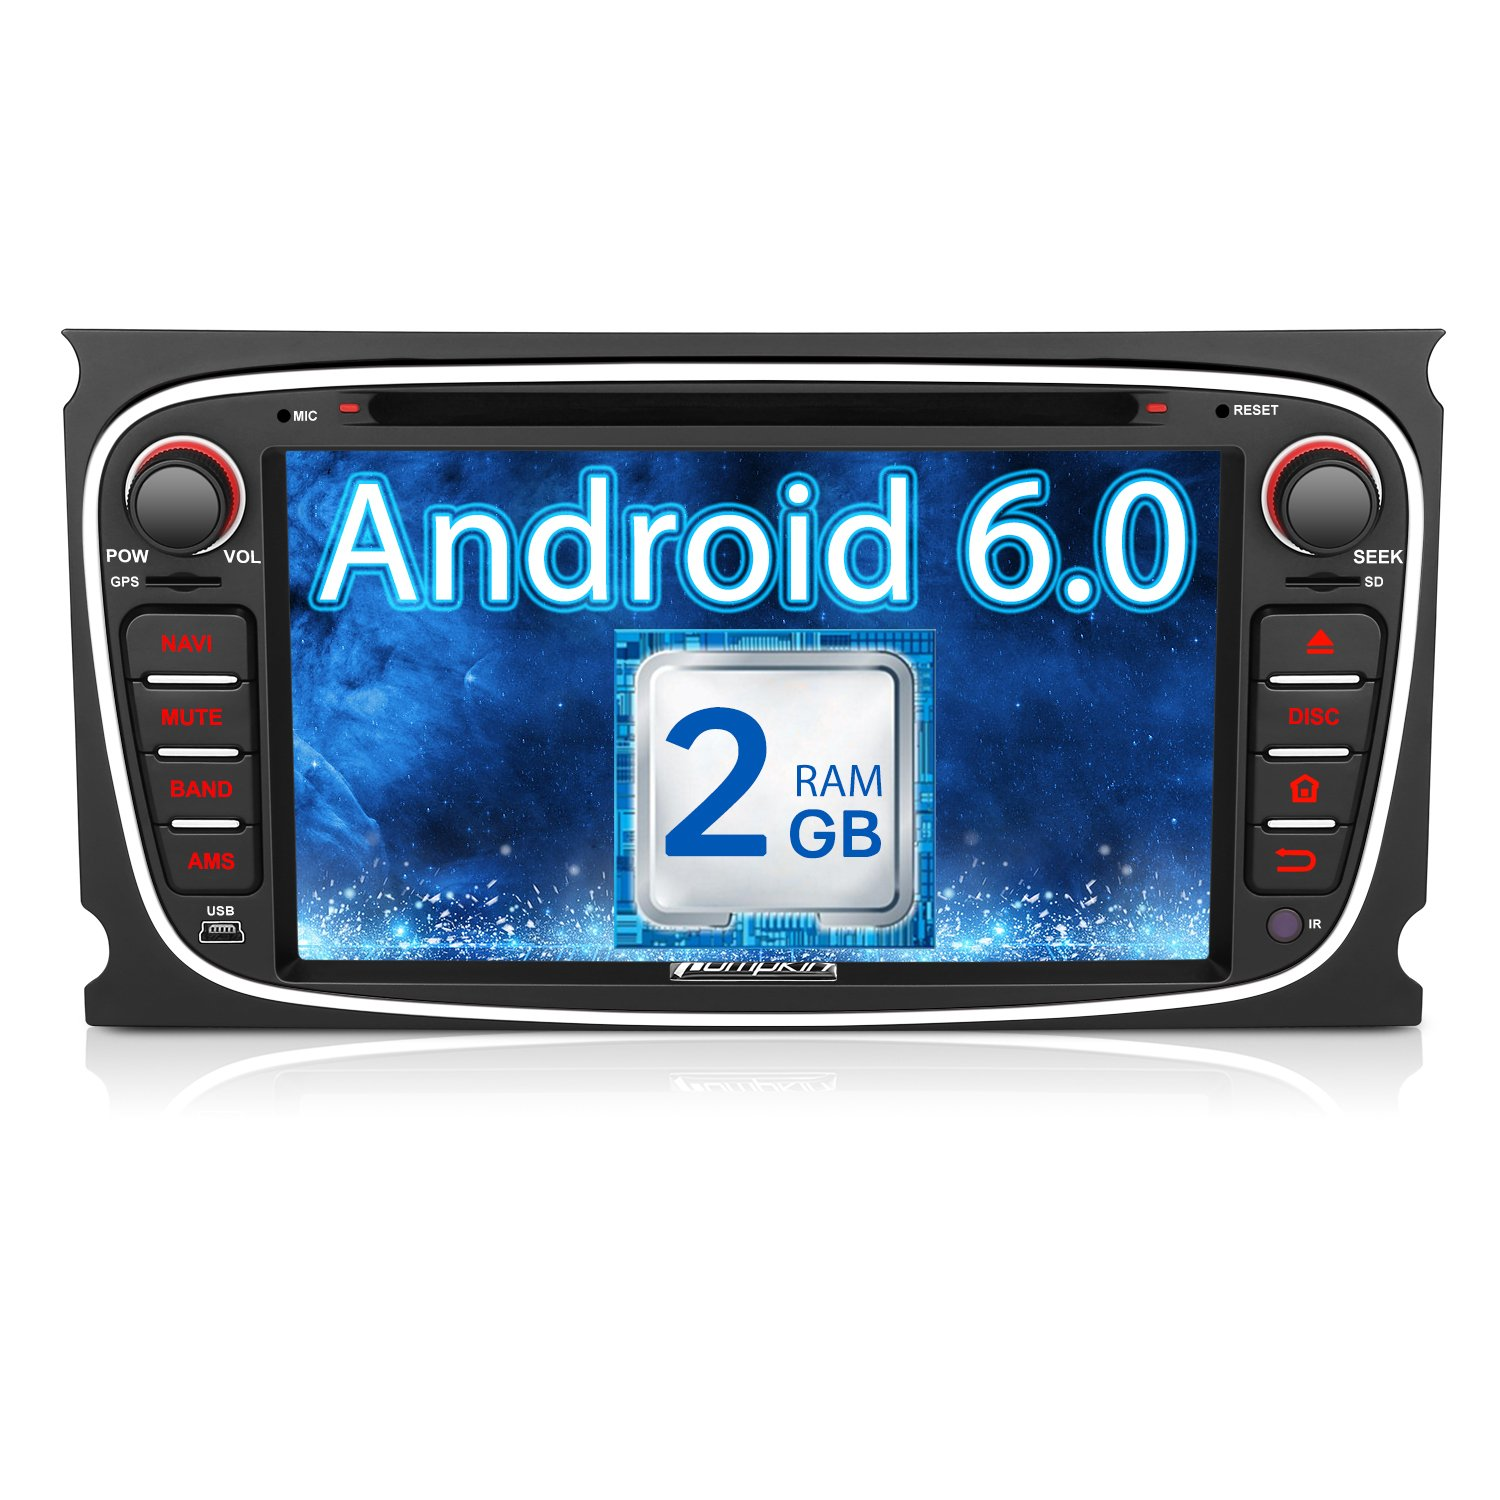 Pumpkin 2GB RAM Android Car DVD Player for Ford Focus: Amazon.co.uk ...